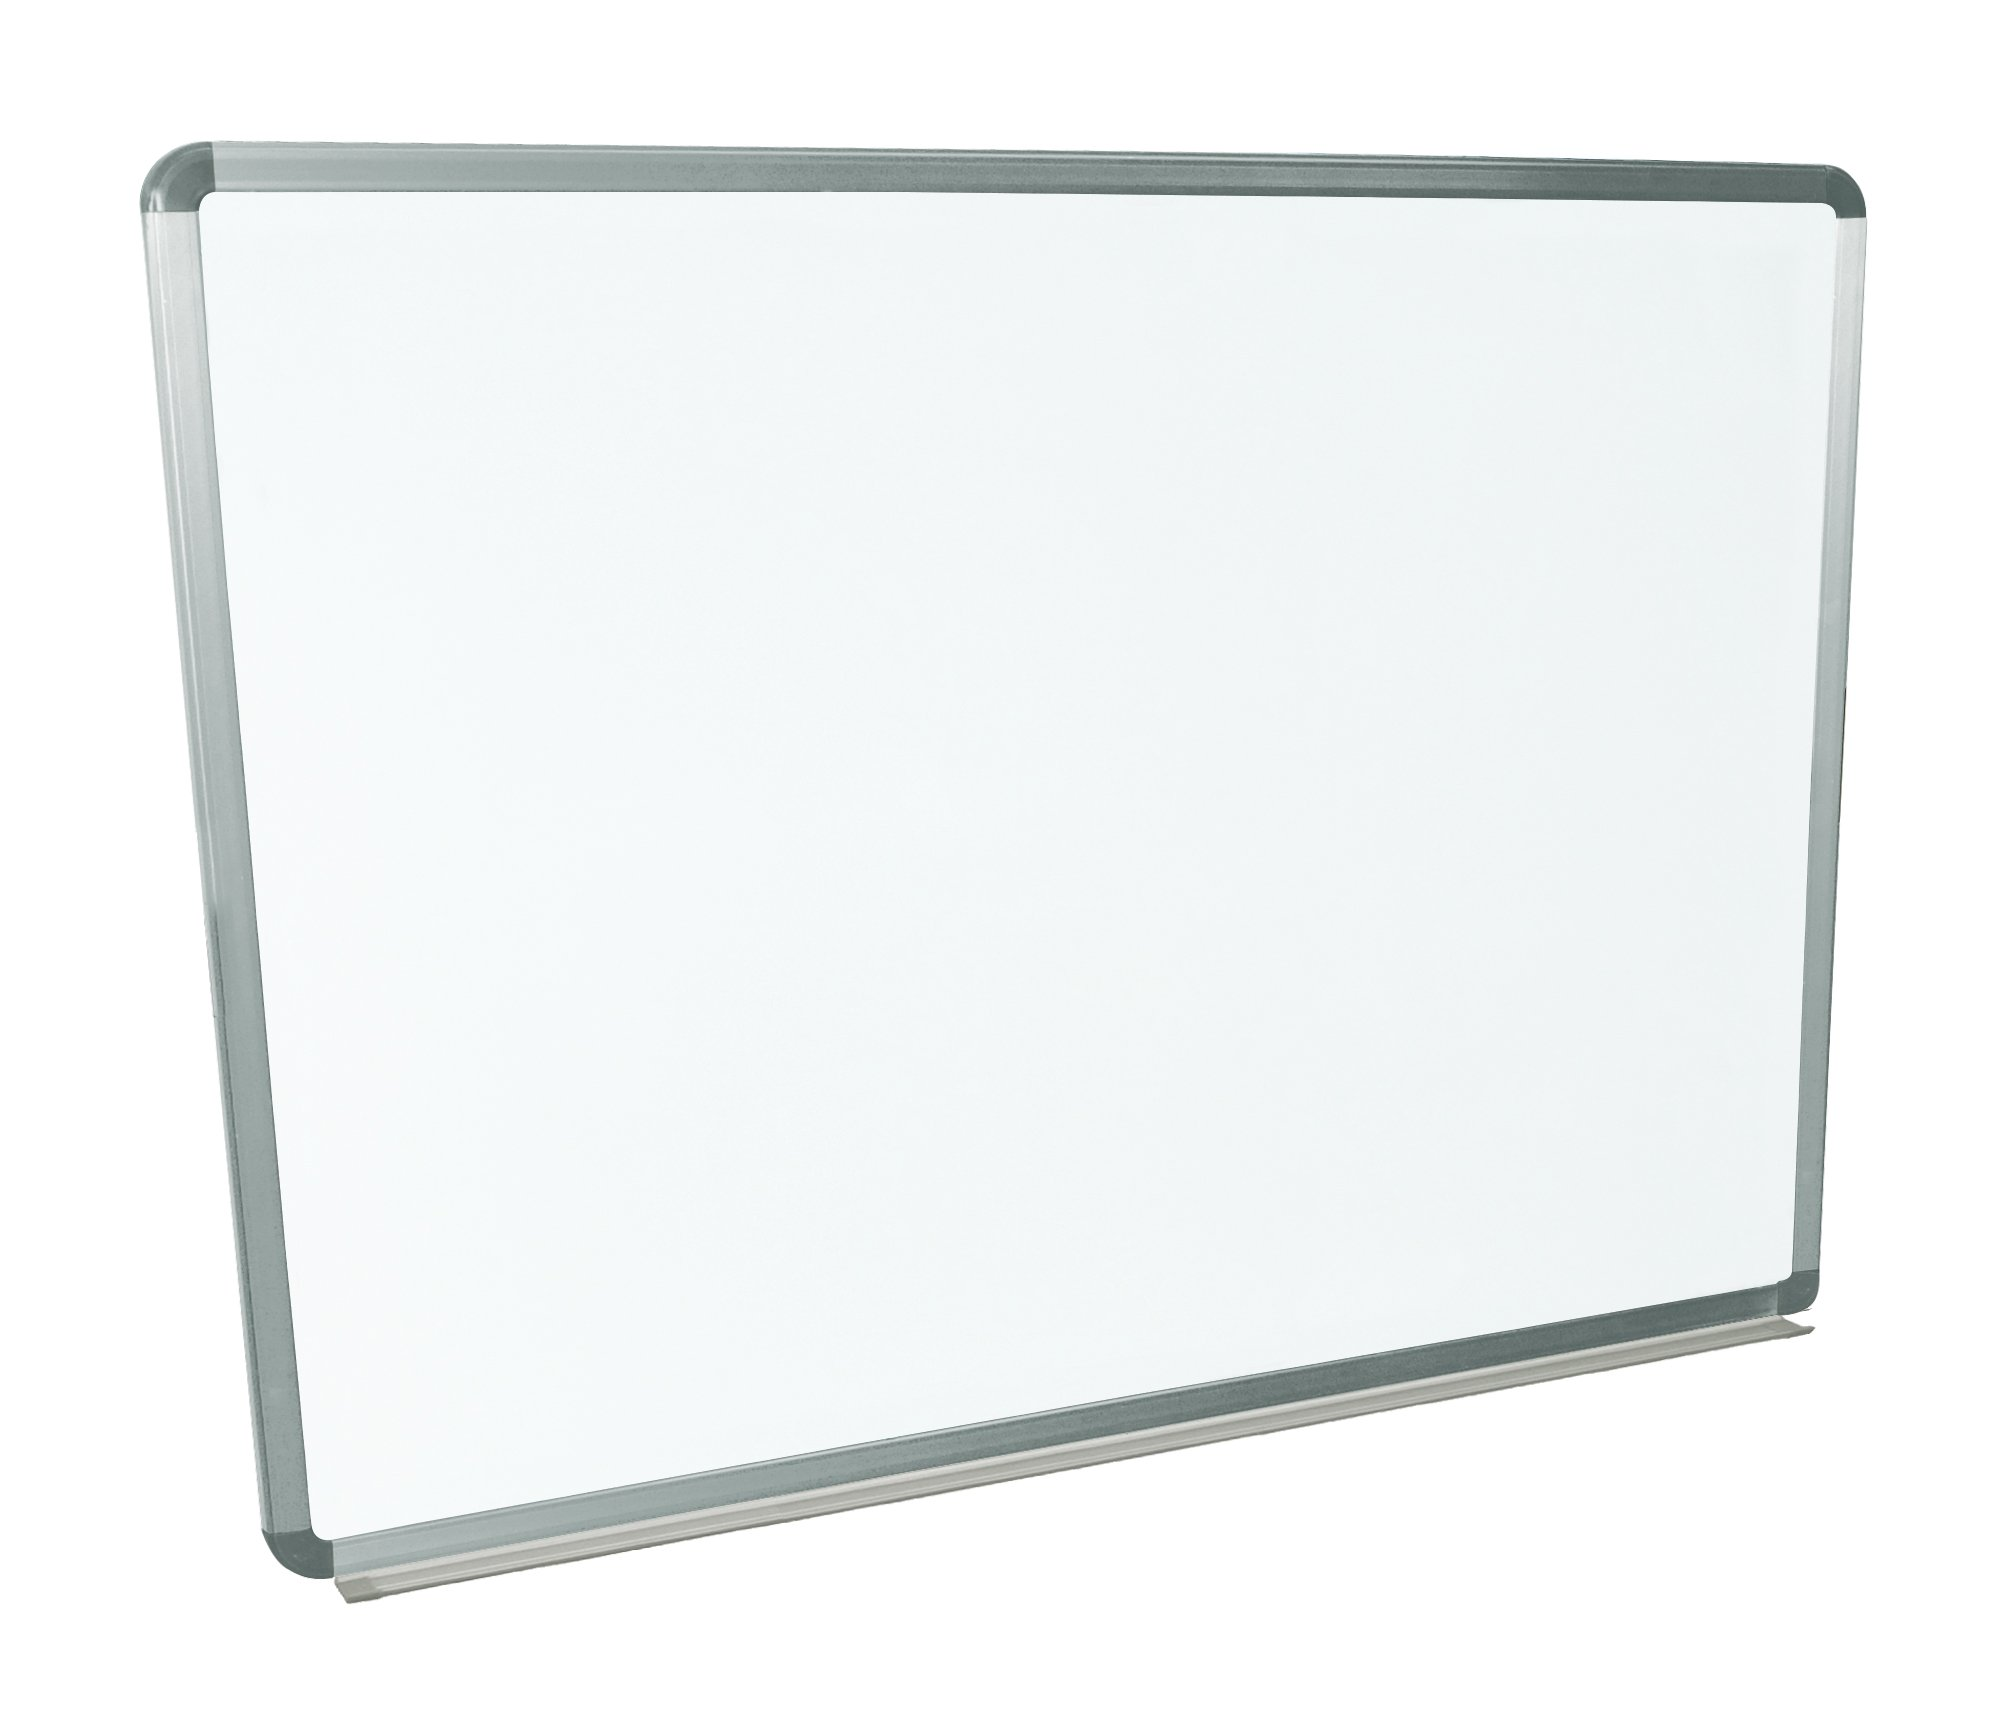 "Luxor 48""W x 36""H Wall Mounted Magnetic Surface Whiteboard"